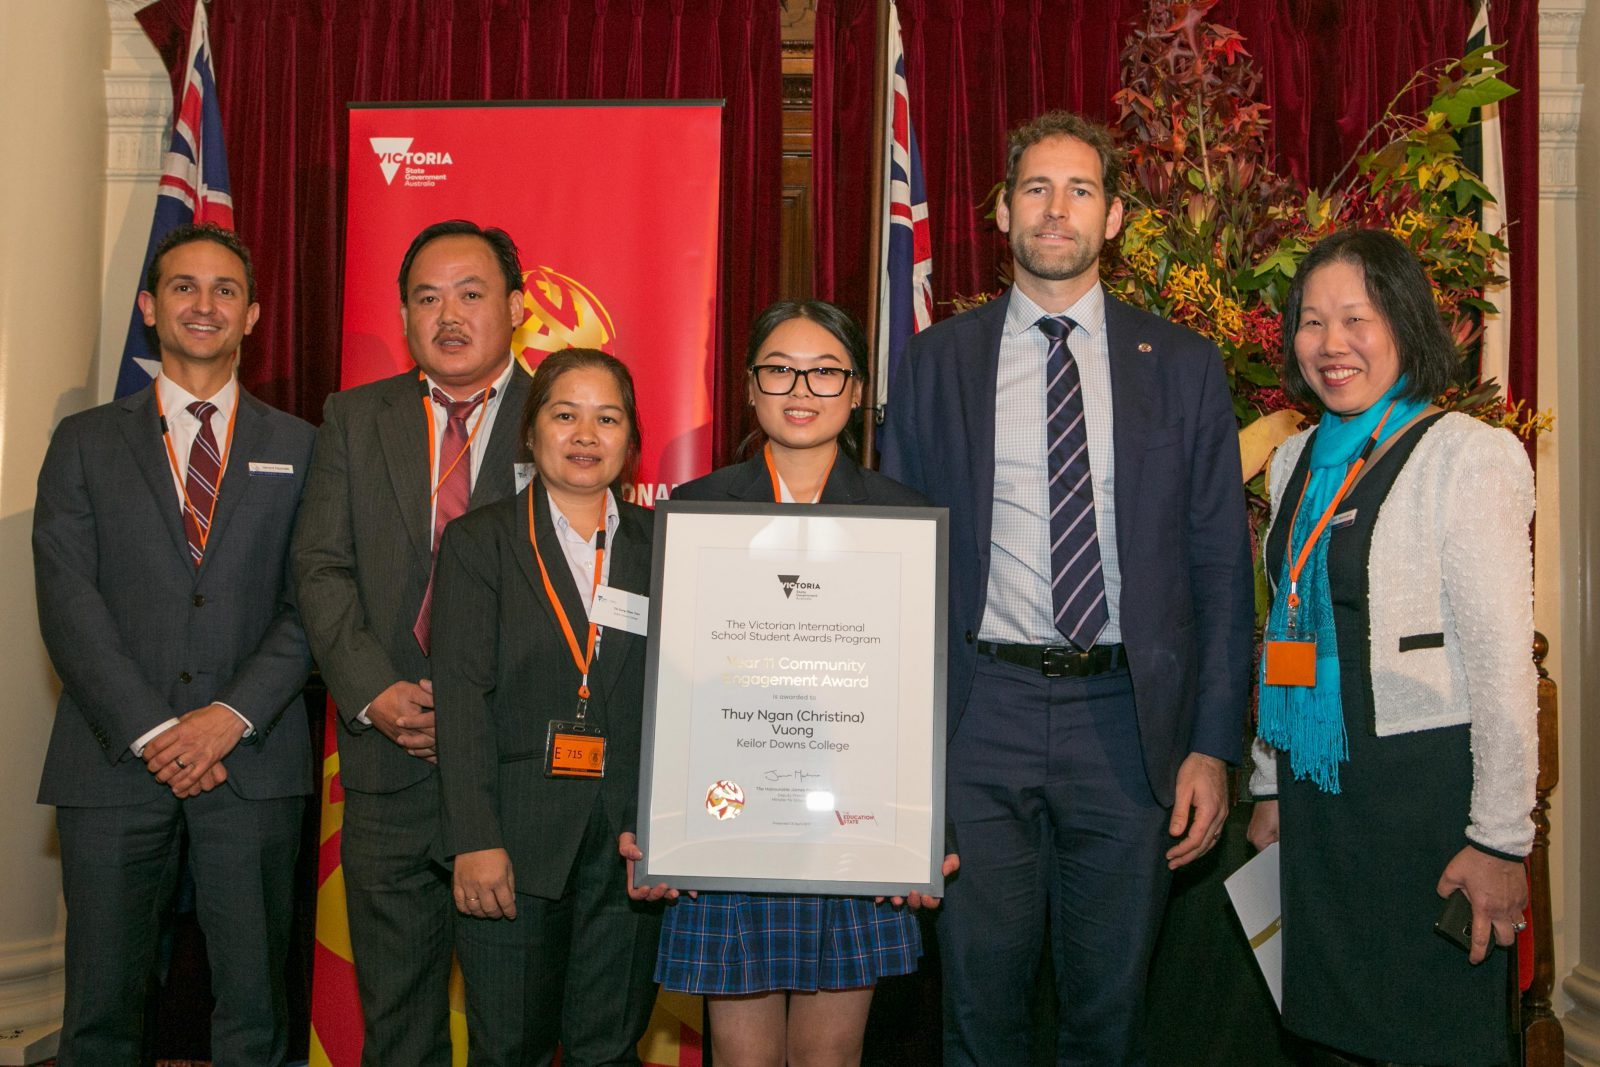 Thuy Ngan (Christina) VUONG 12G2, the winner of Year 11 Community Engagement Award